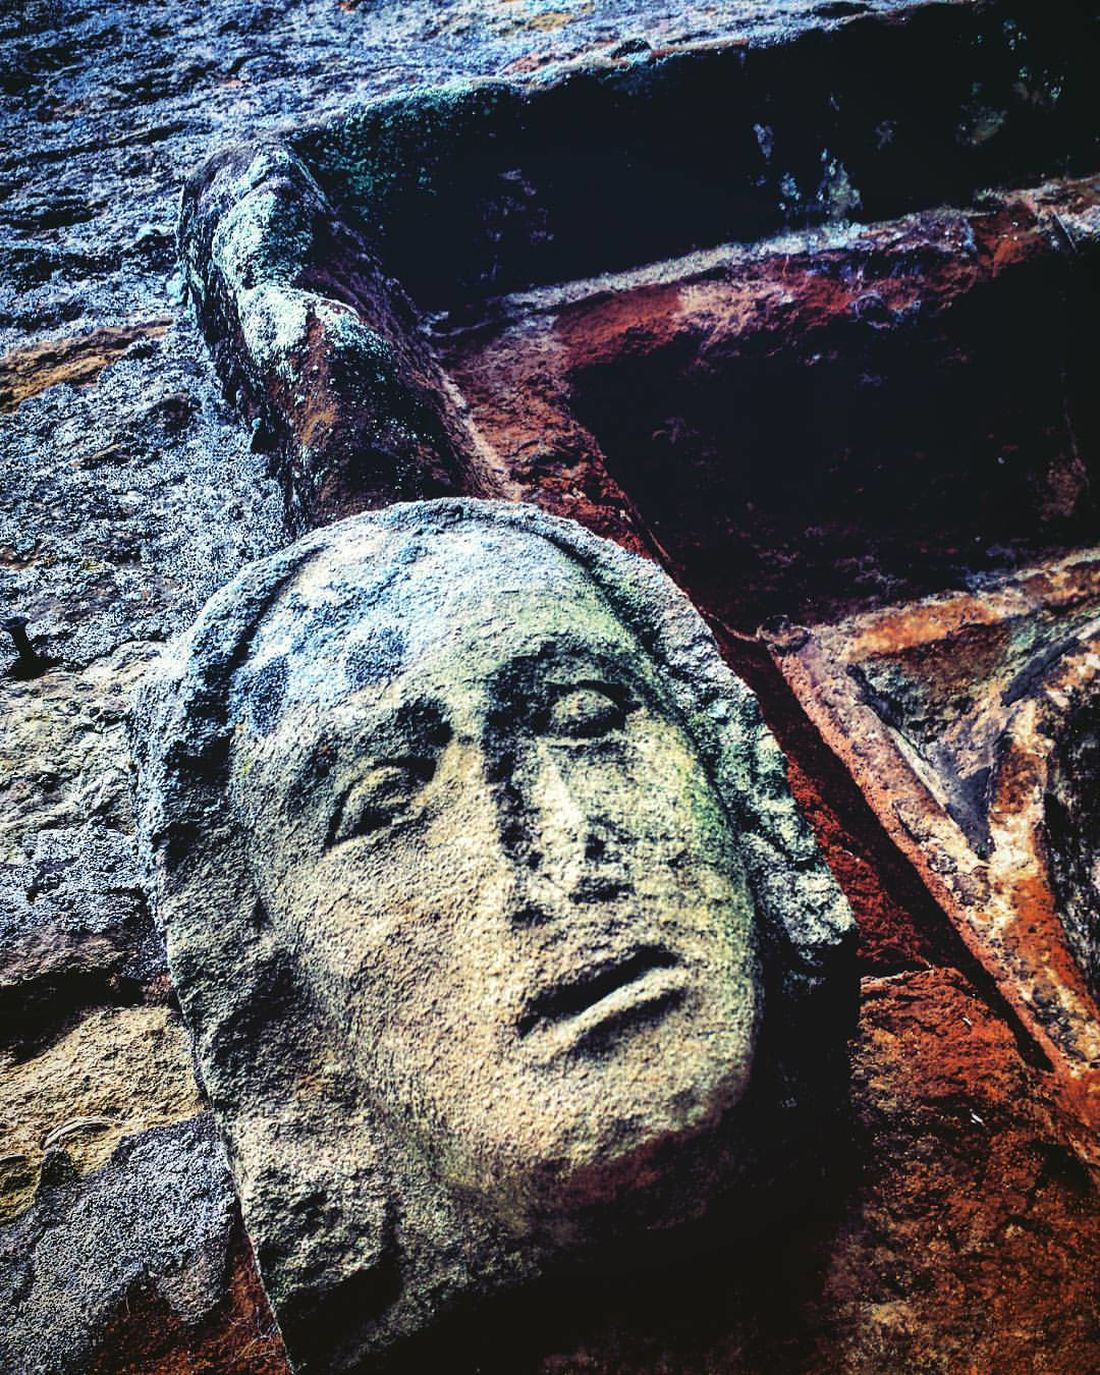 Contrast Detail Deterioration Old Stone Stone Face Texture Weathered Stone Face